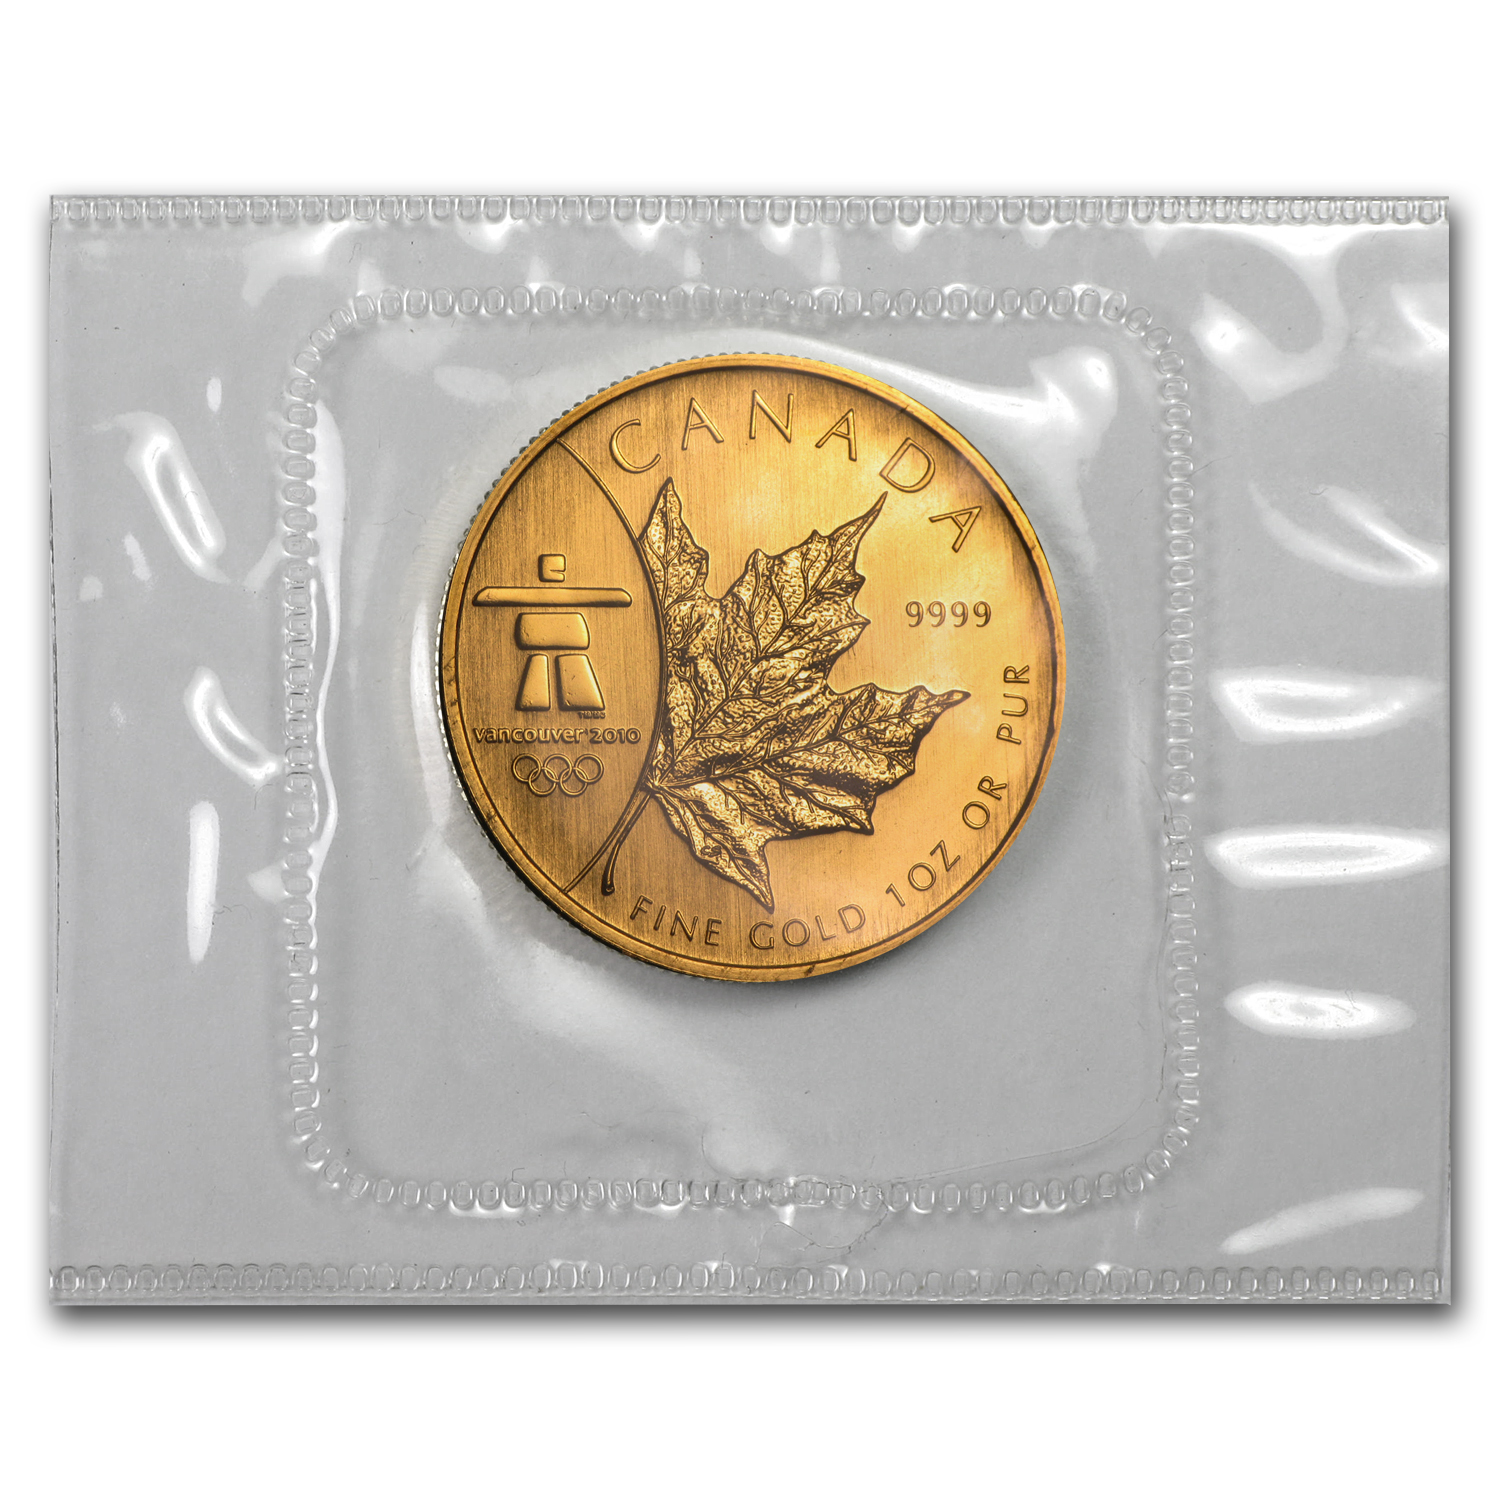 2008 1 oz Gold Canadian Maple Leaf (Vancouver) - Olympics